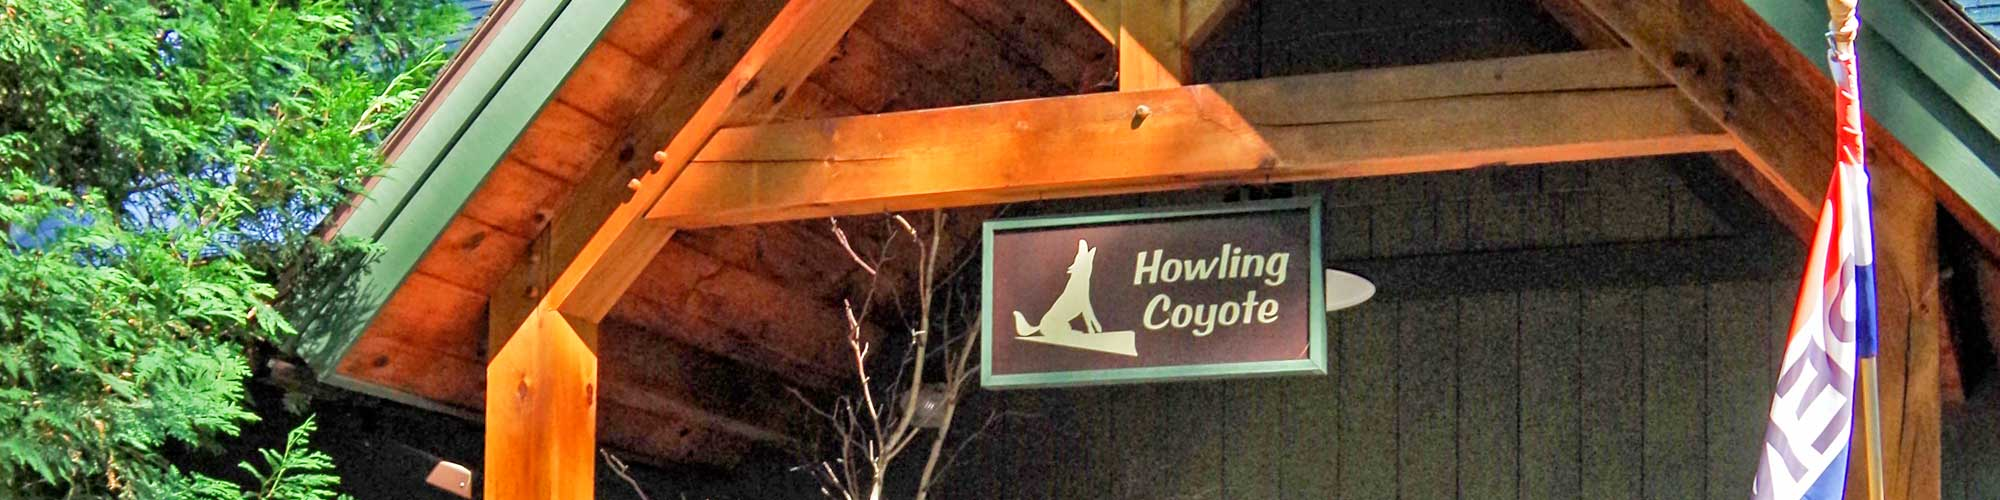 Entrance to the Howling Coyote Gift Shop